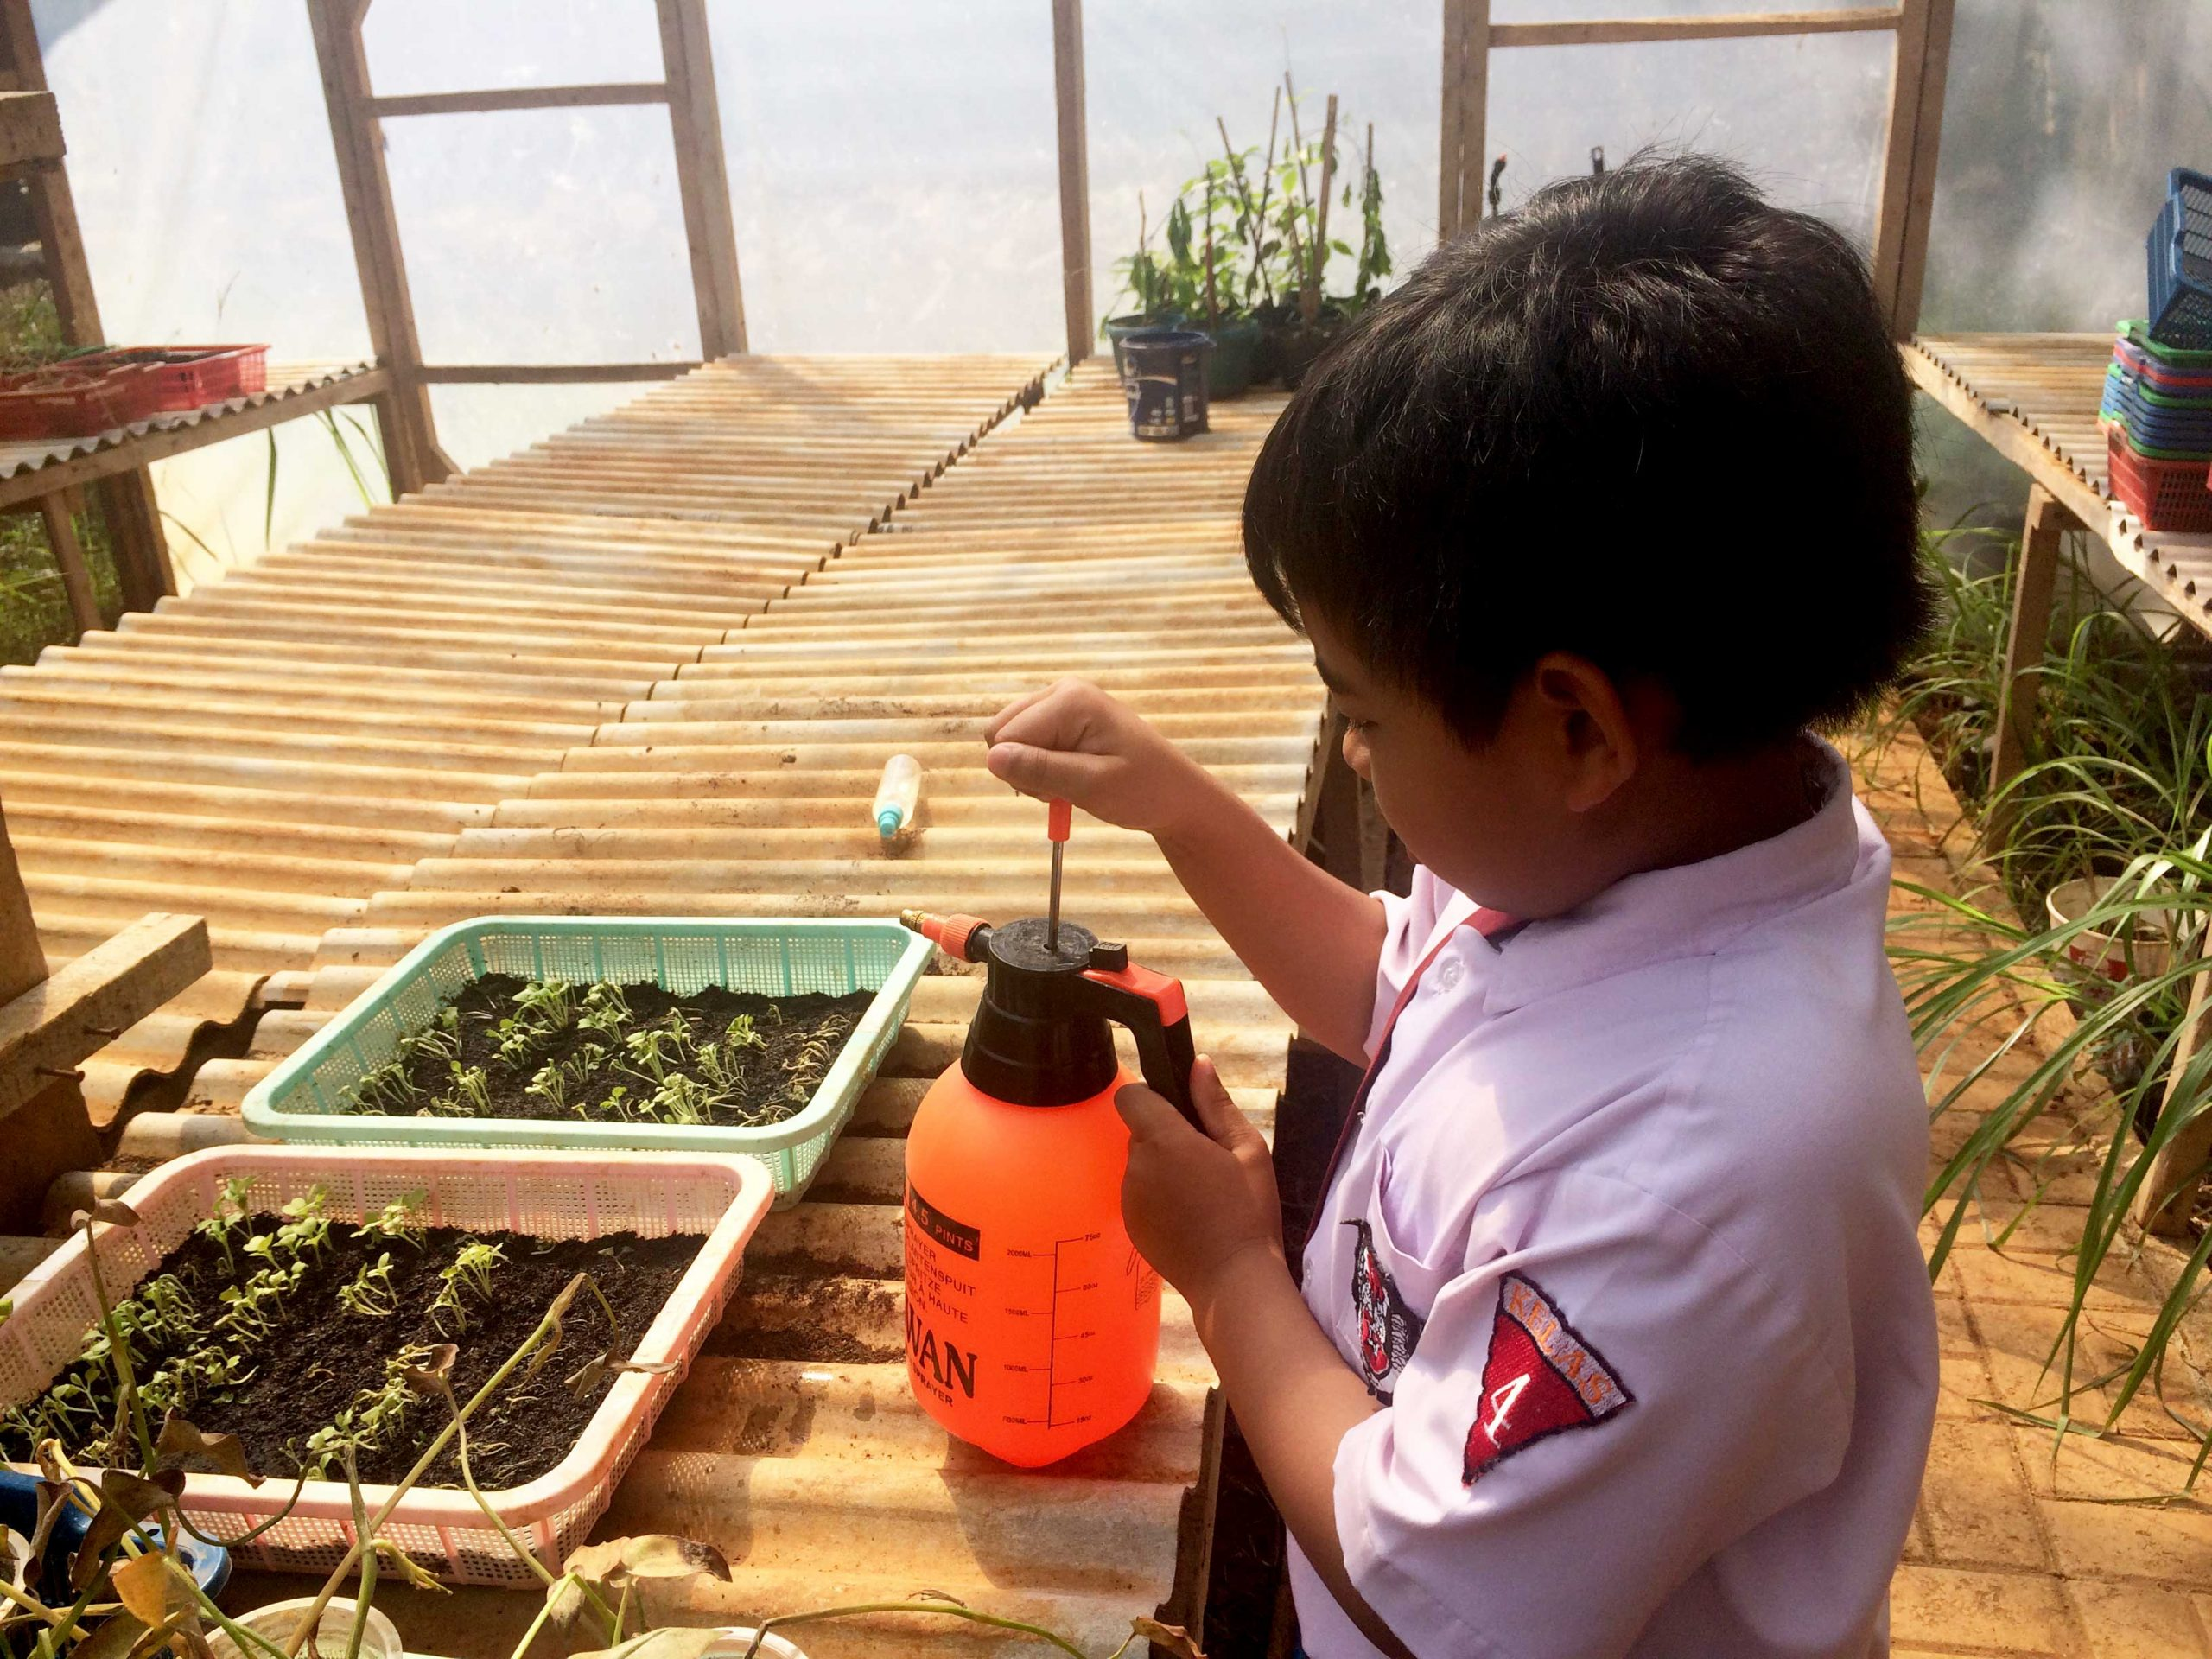 An elementary school student working on his seeding project | Photo: School of Global Madani